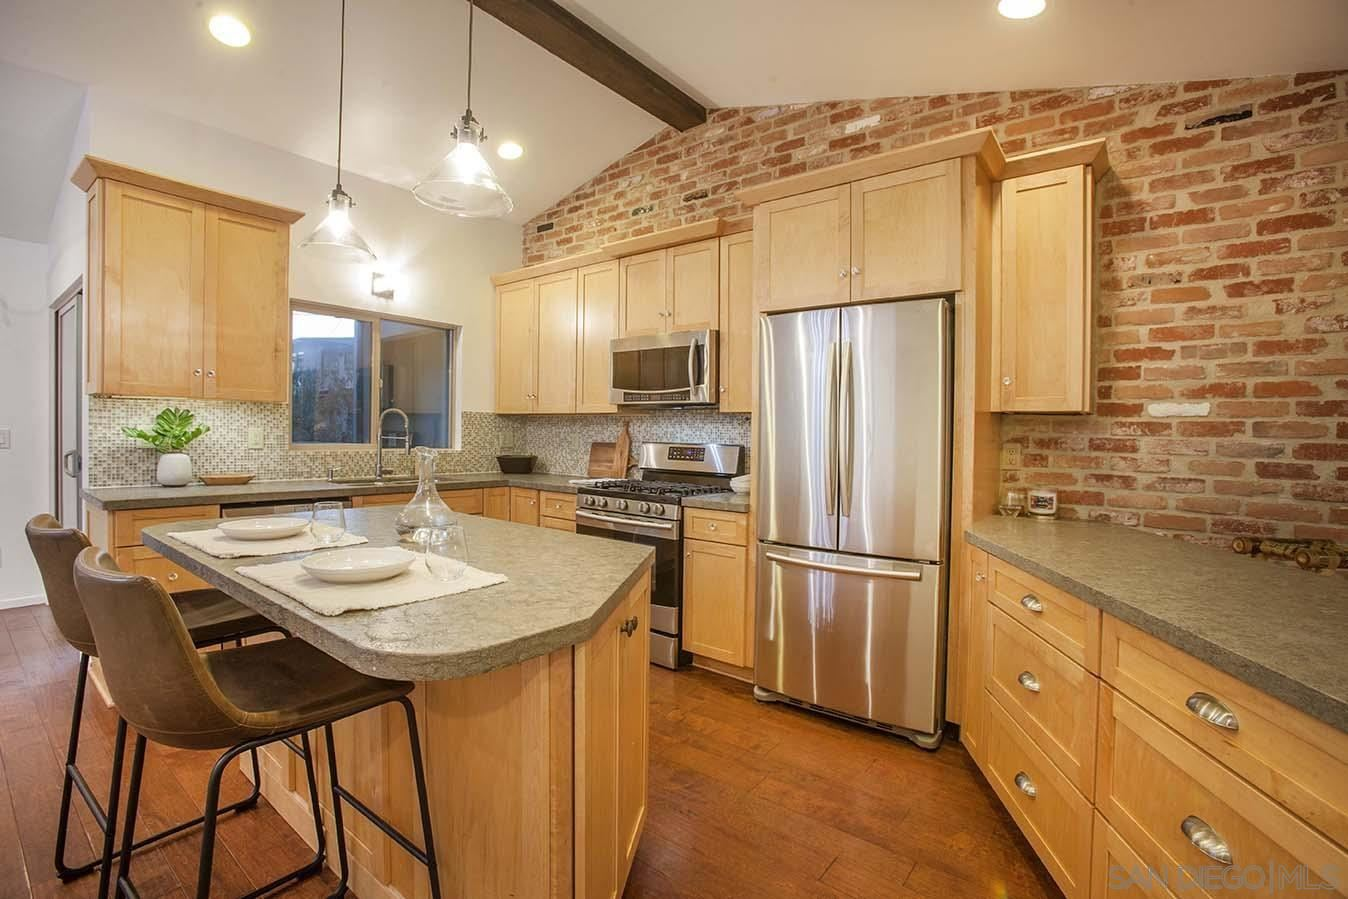 Photo of 2179 Glasgow Ave, Cardiff By the Sea, CA 92007 (MLS # 210025329)